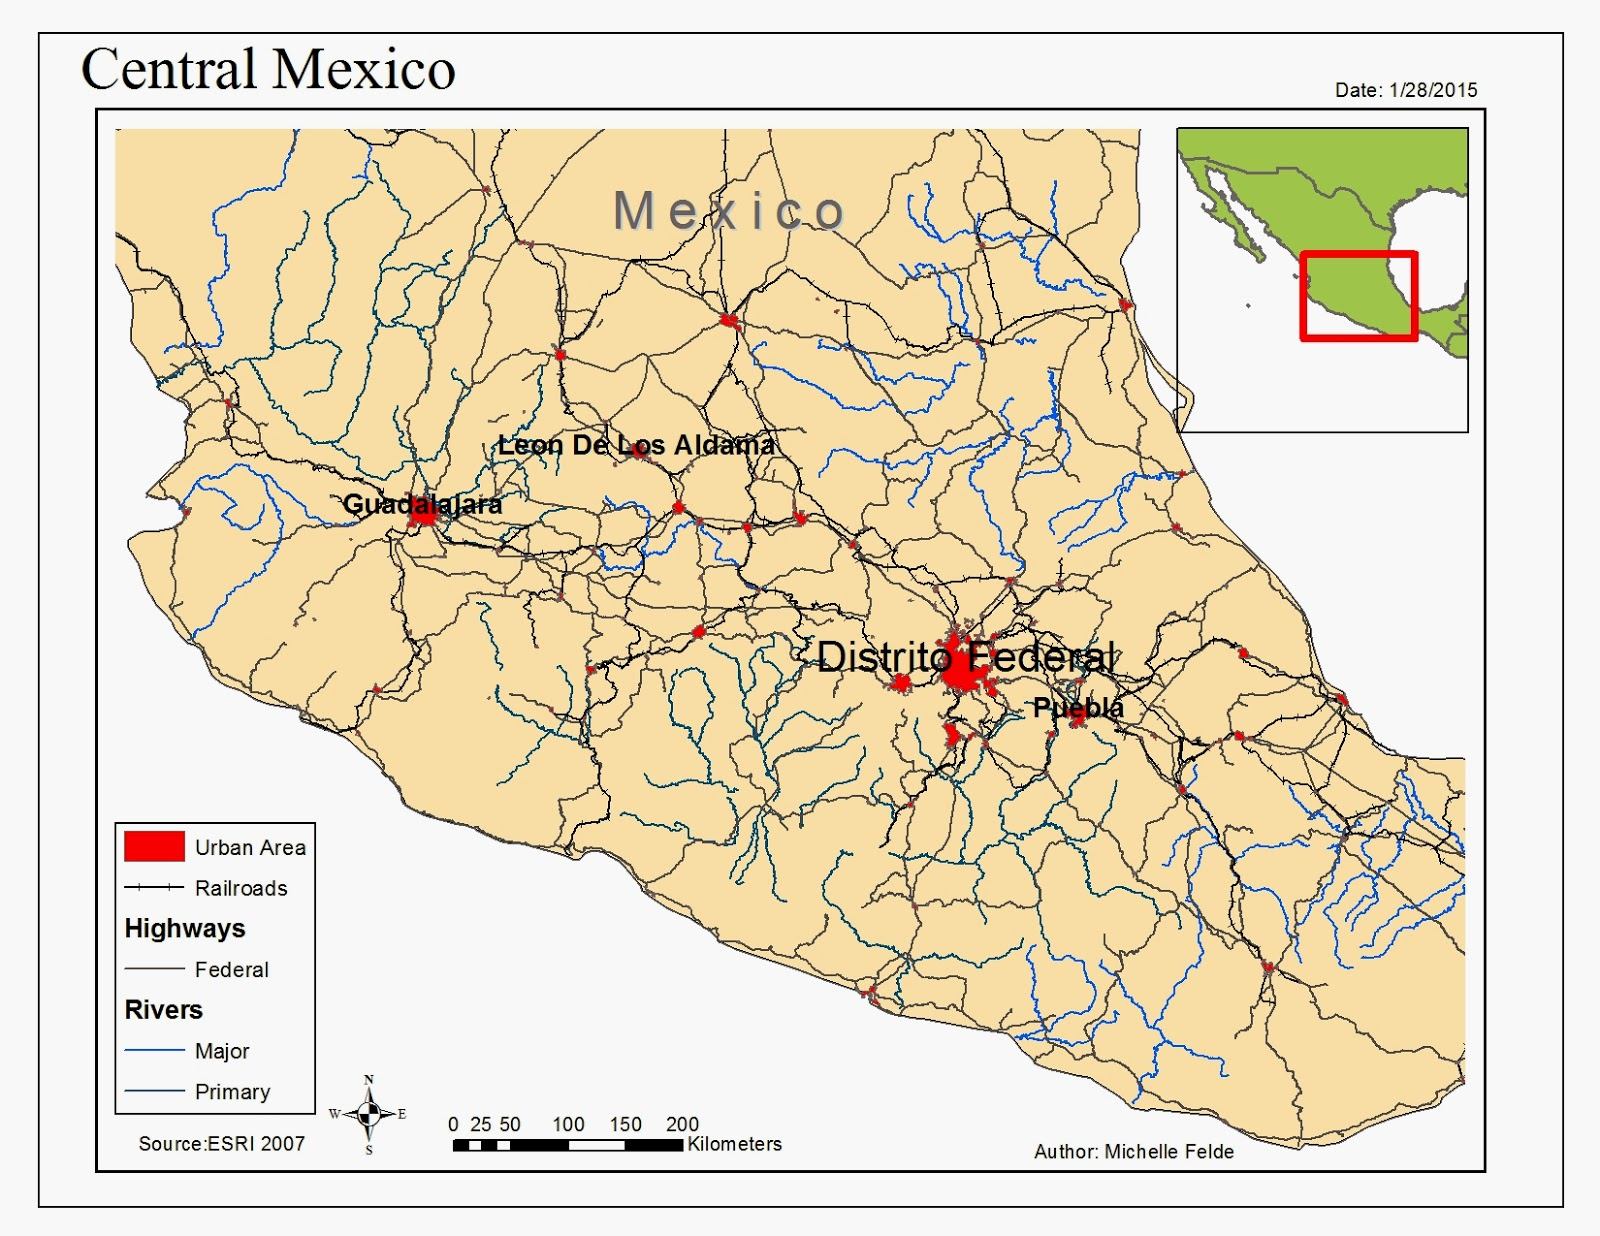 one of the maps created was to display the various roads railroads and rivers in mexico with the urban areas the symbology was adjusted to show a clear